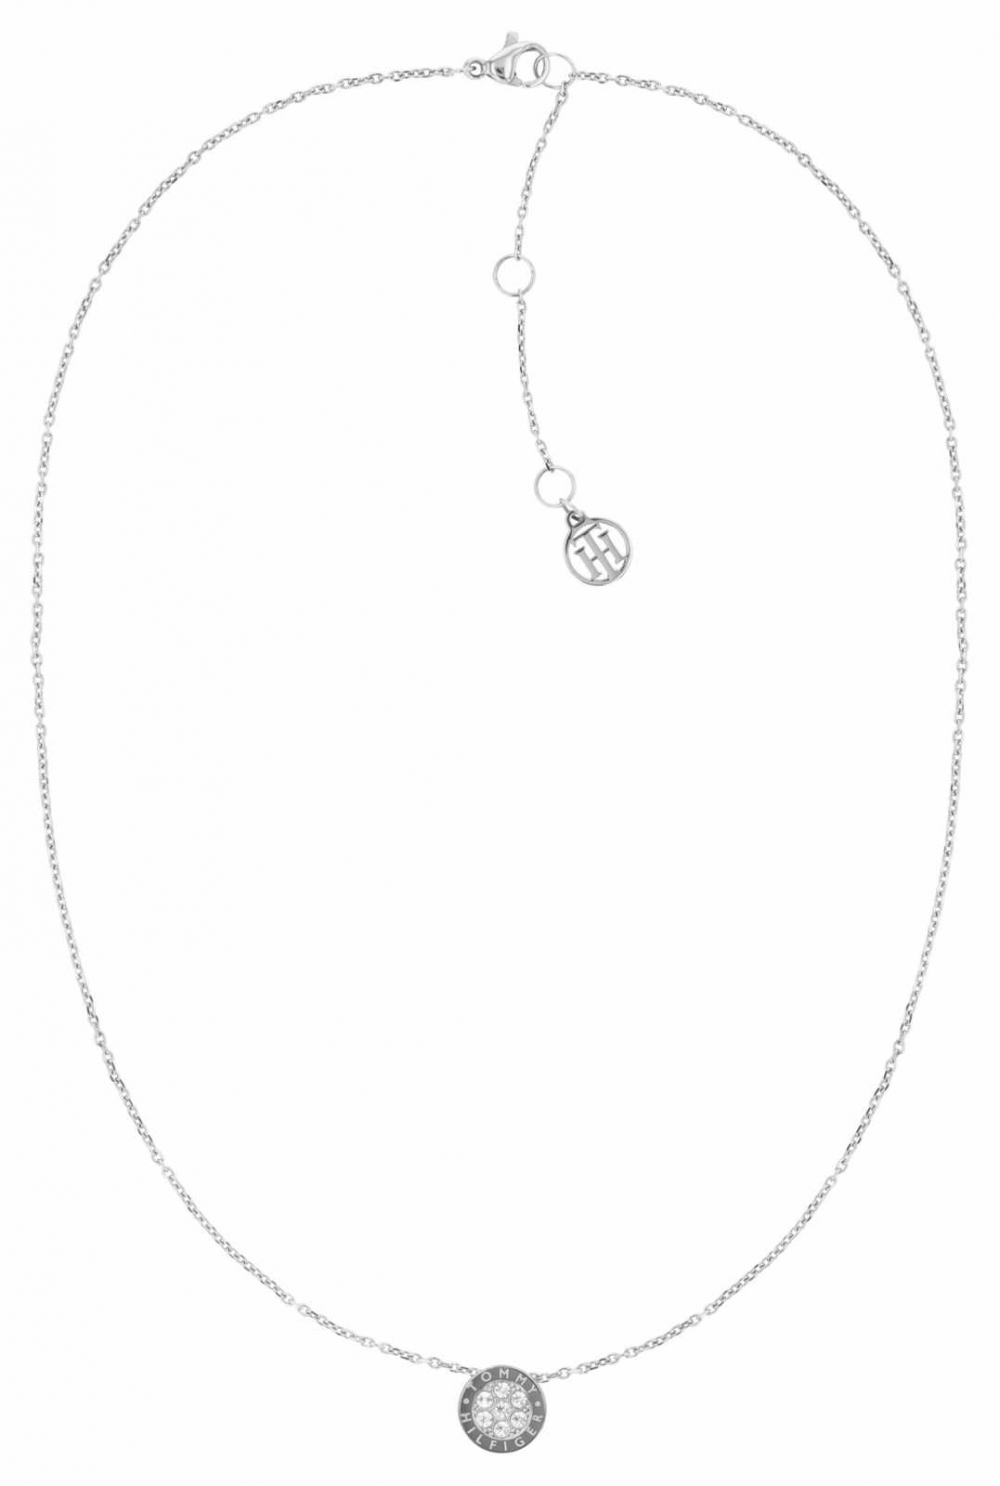 Tommy Hilfiger Crystal Stainless Steel Necklace 2780568